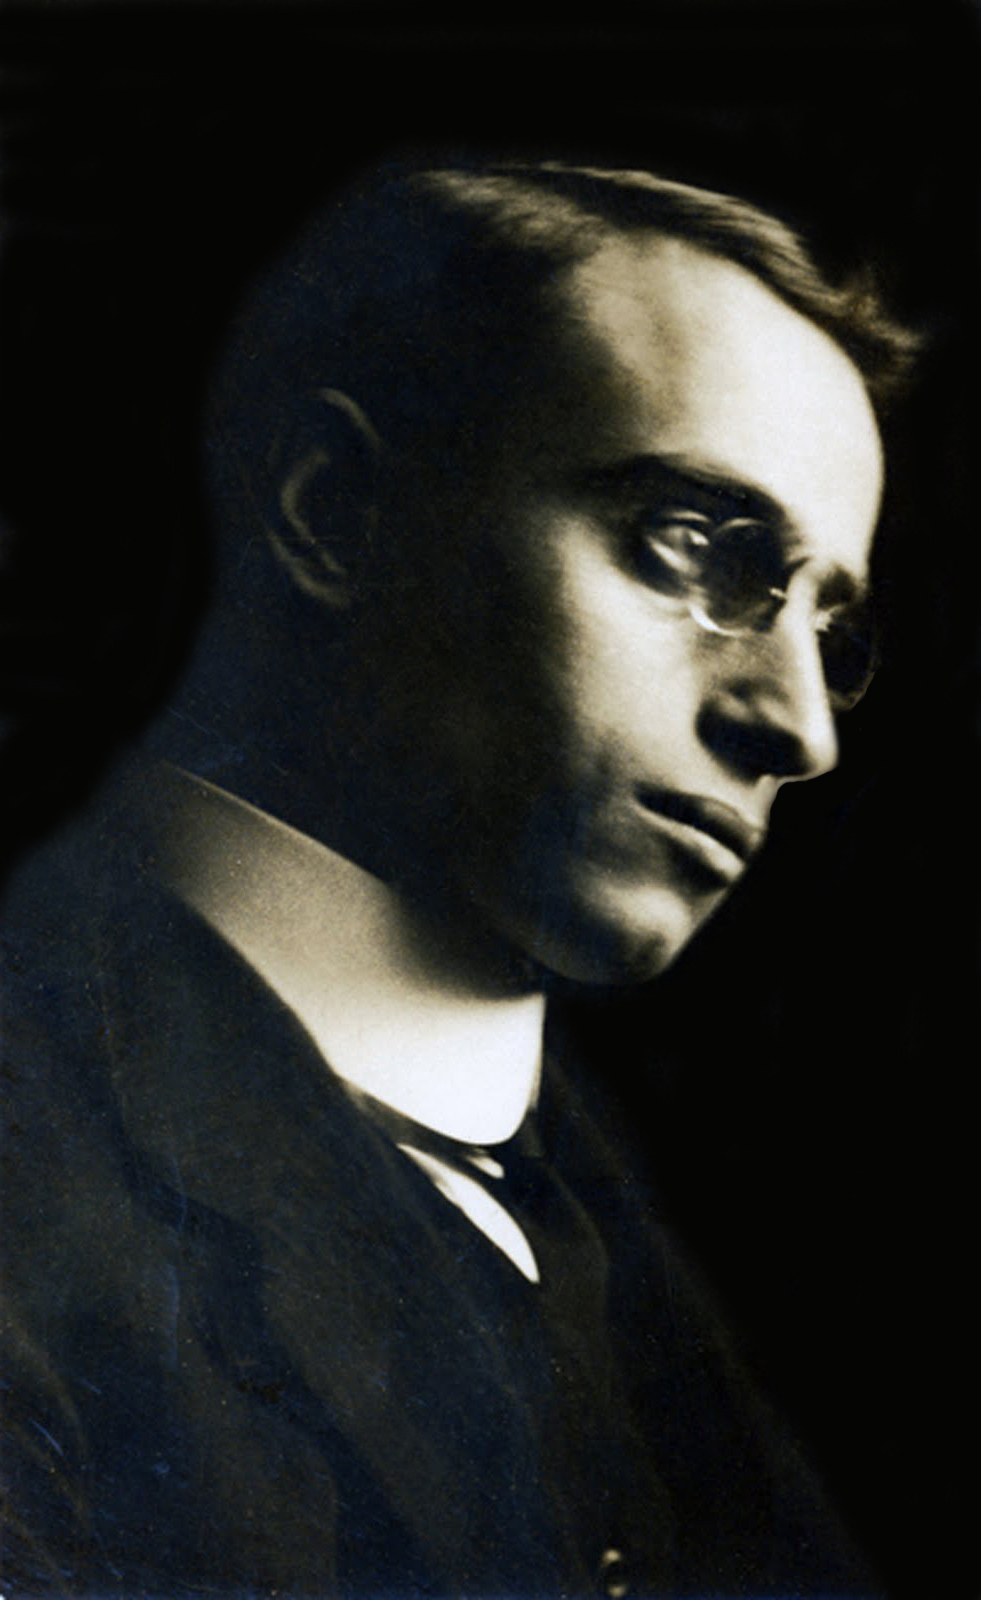 leo frank who really solved the mary phagan murder case